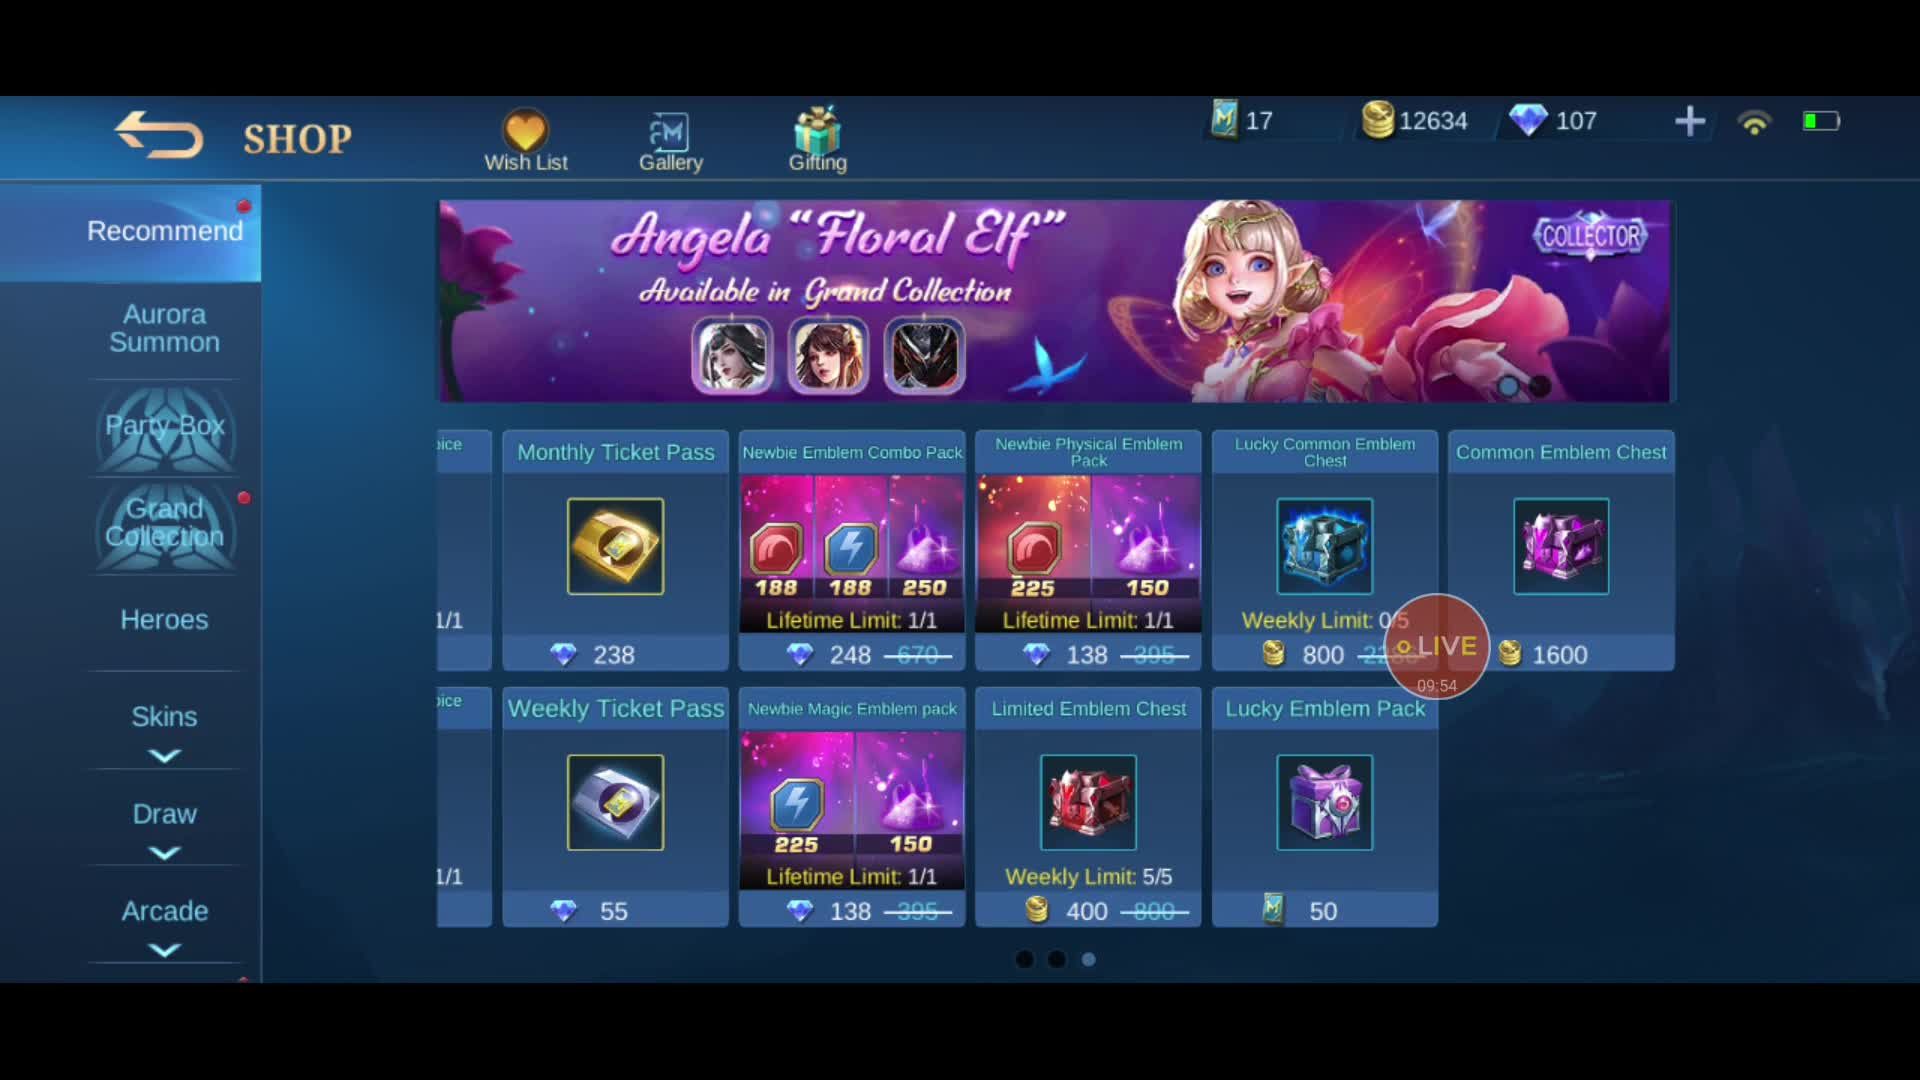 Mobile Legends Live / Twitch Titan @Gold Role Give Away on 13-Apr-21-18:06:40